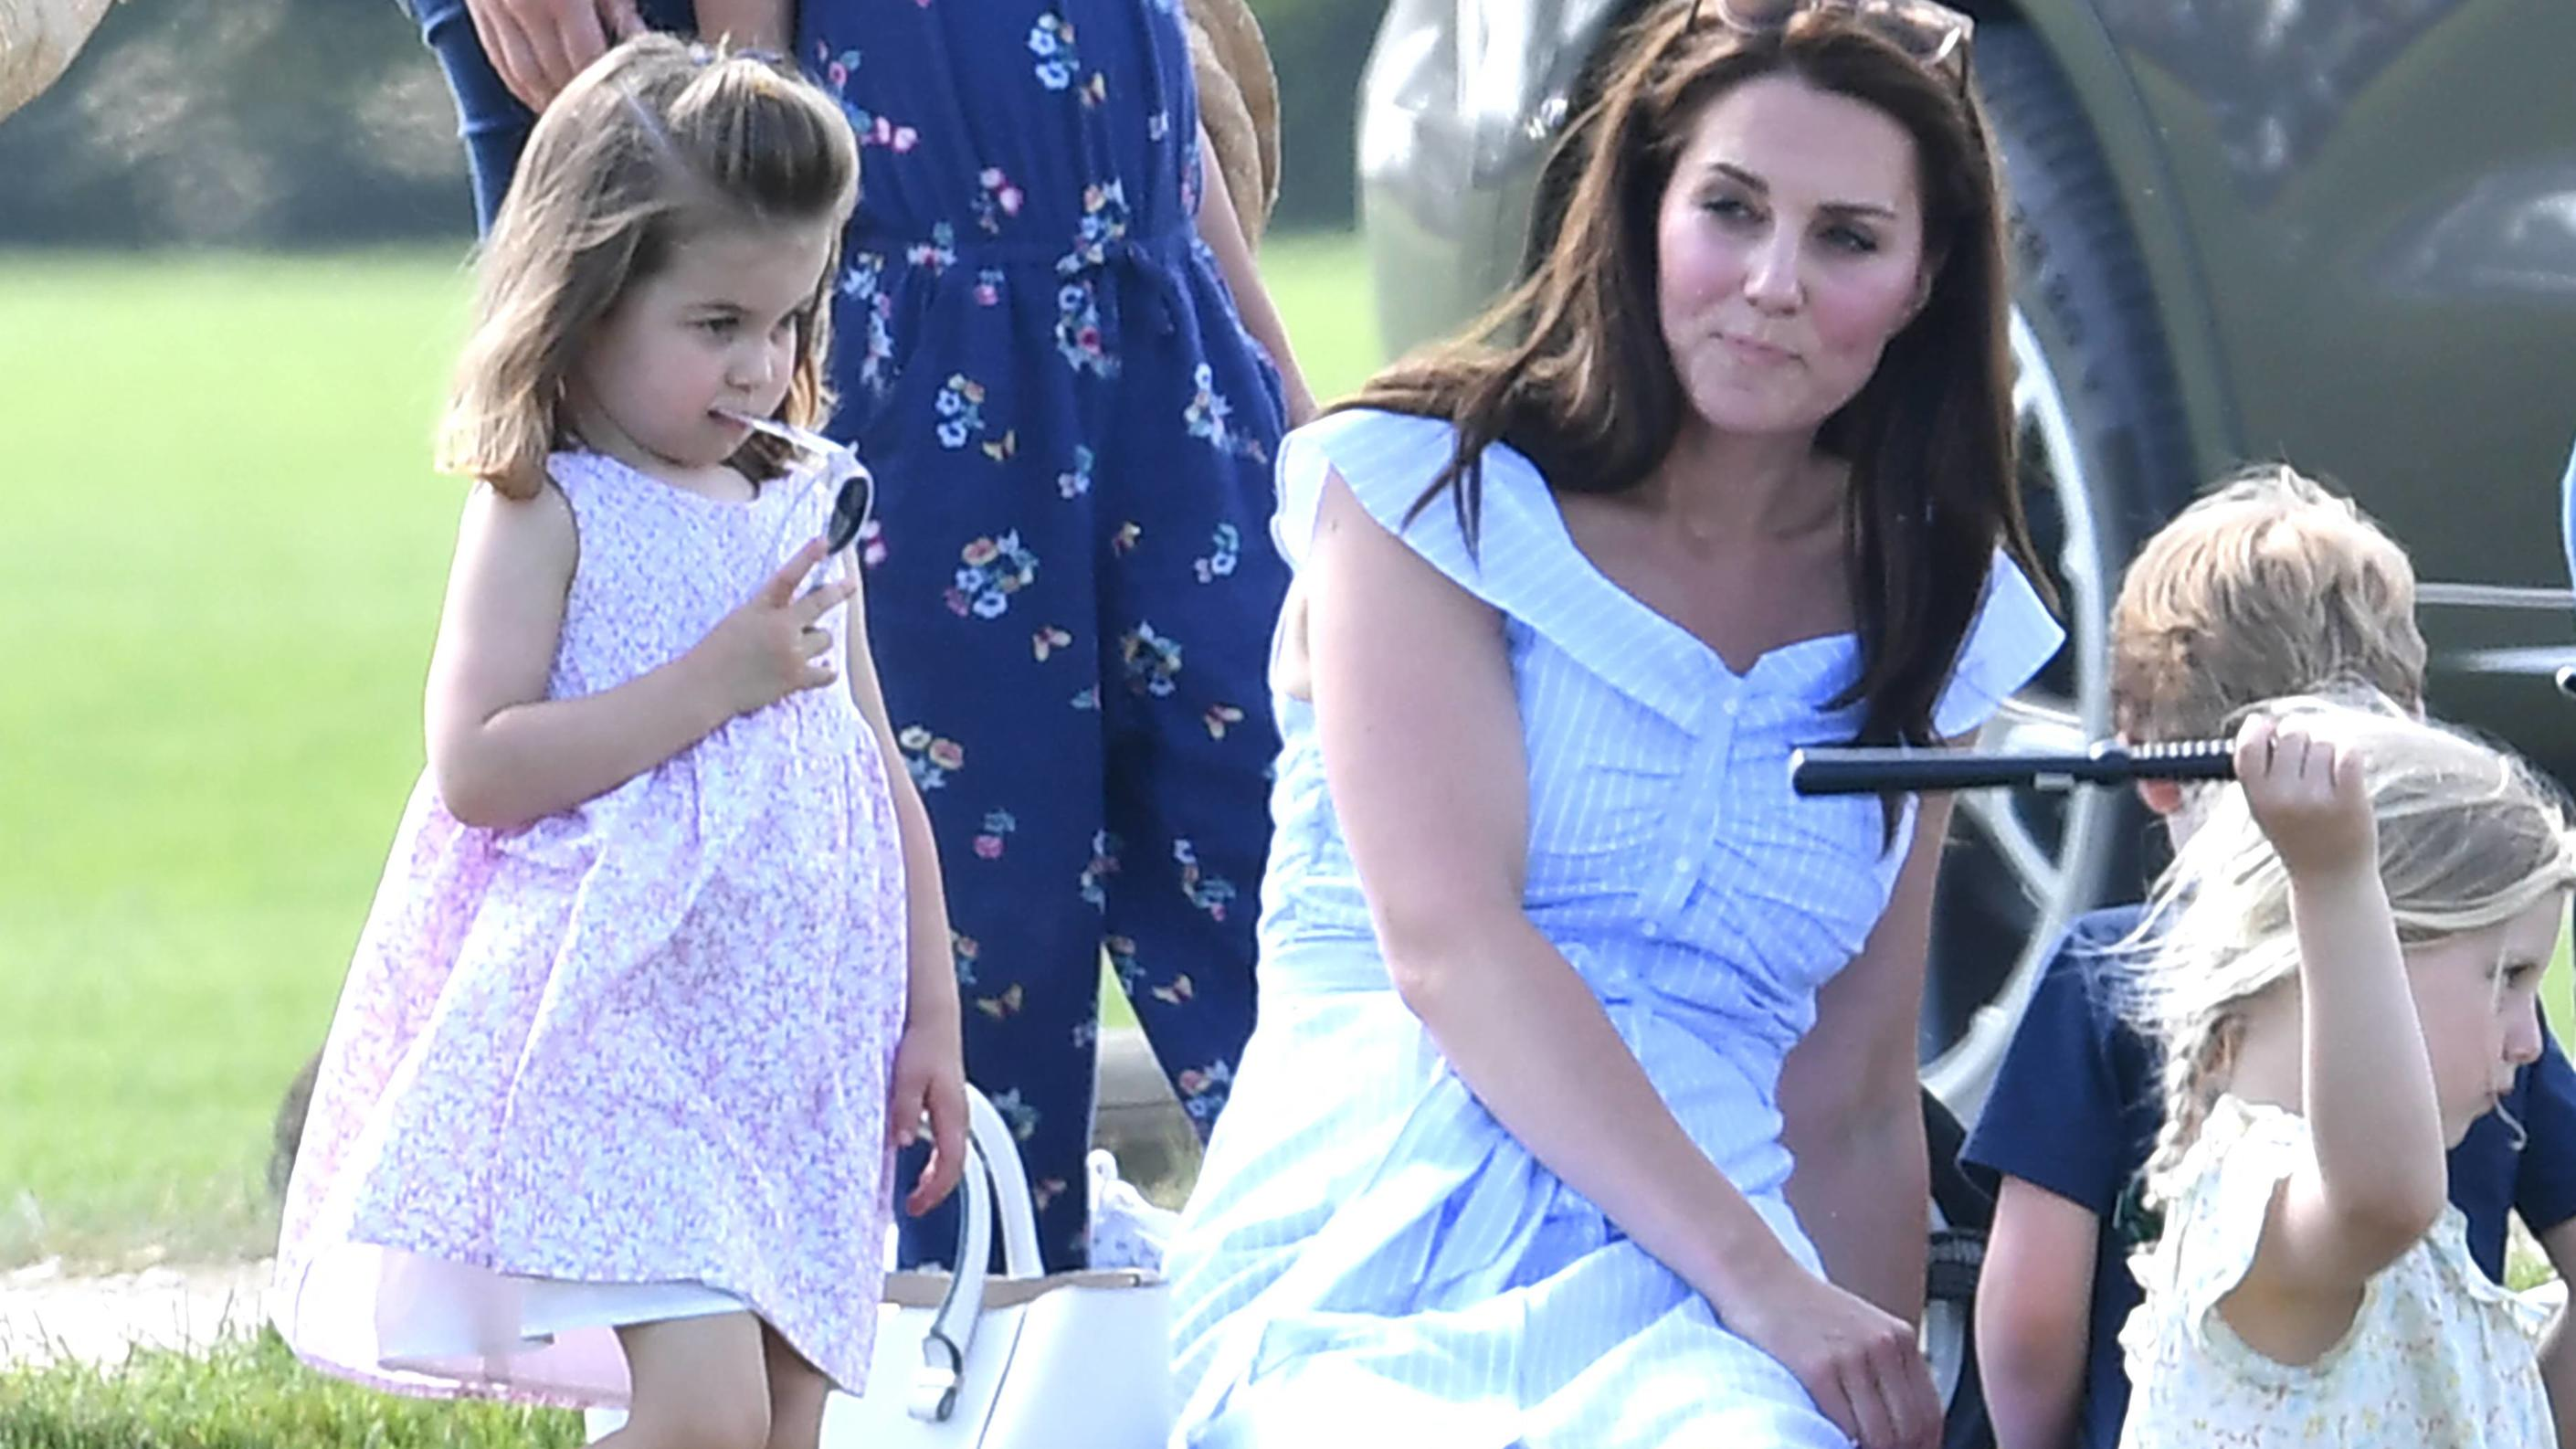 Maserati Royal Charity Polo Trophy Catherine Duchess of Cambridge, Prince George and Princess Charlotte watch on as Prince William Duke of Cambridge plays Polo at the Gloucestershire Festival of Polo, the Beaufort Club, . Photo credit should read: Do